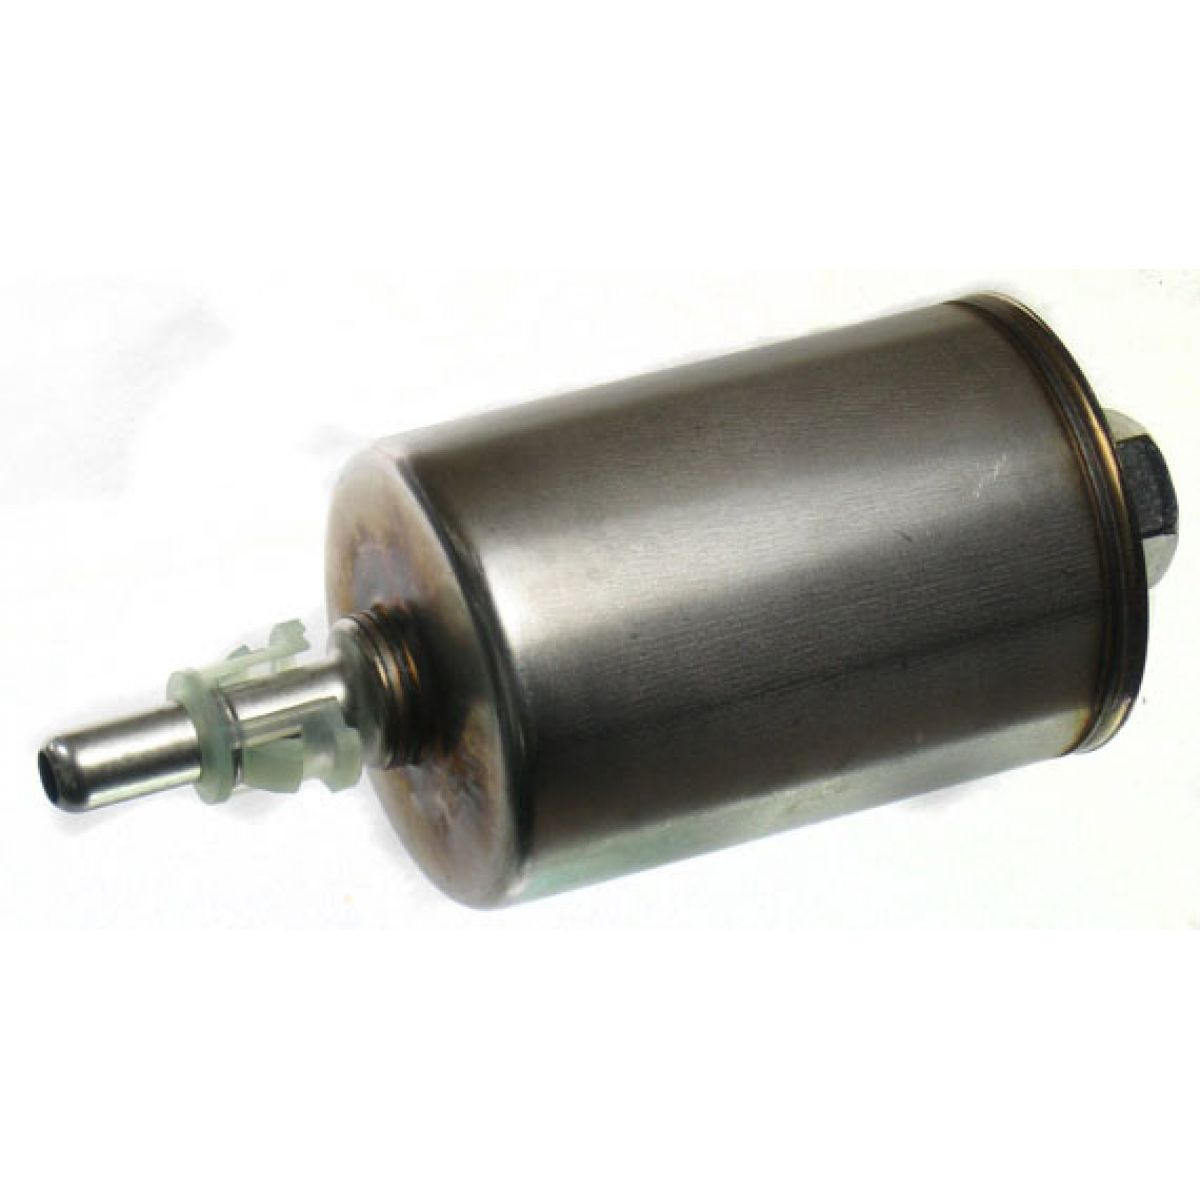 ac delco gf578 fuel gas filter for chevy cadillac buick pontiac olds rh ebay com 1998 Lumina 97 Chevy Lumina